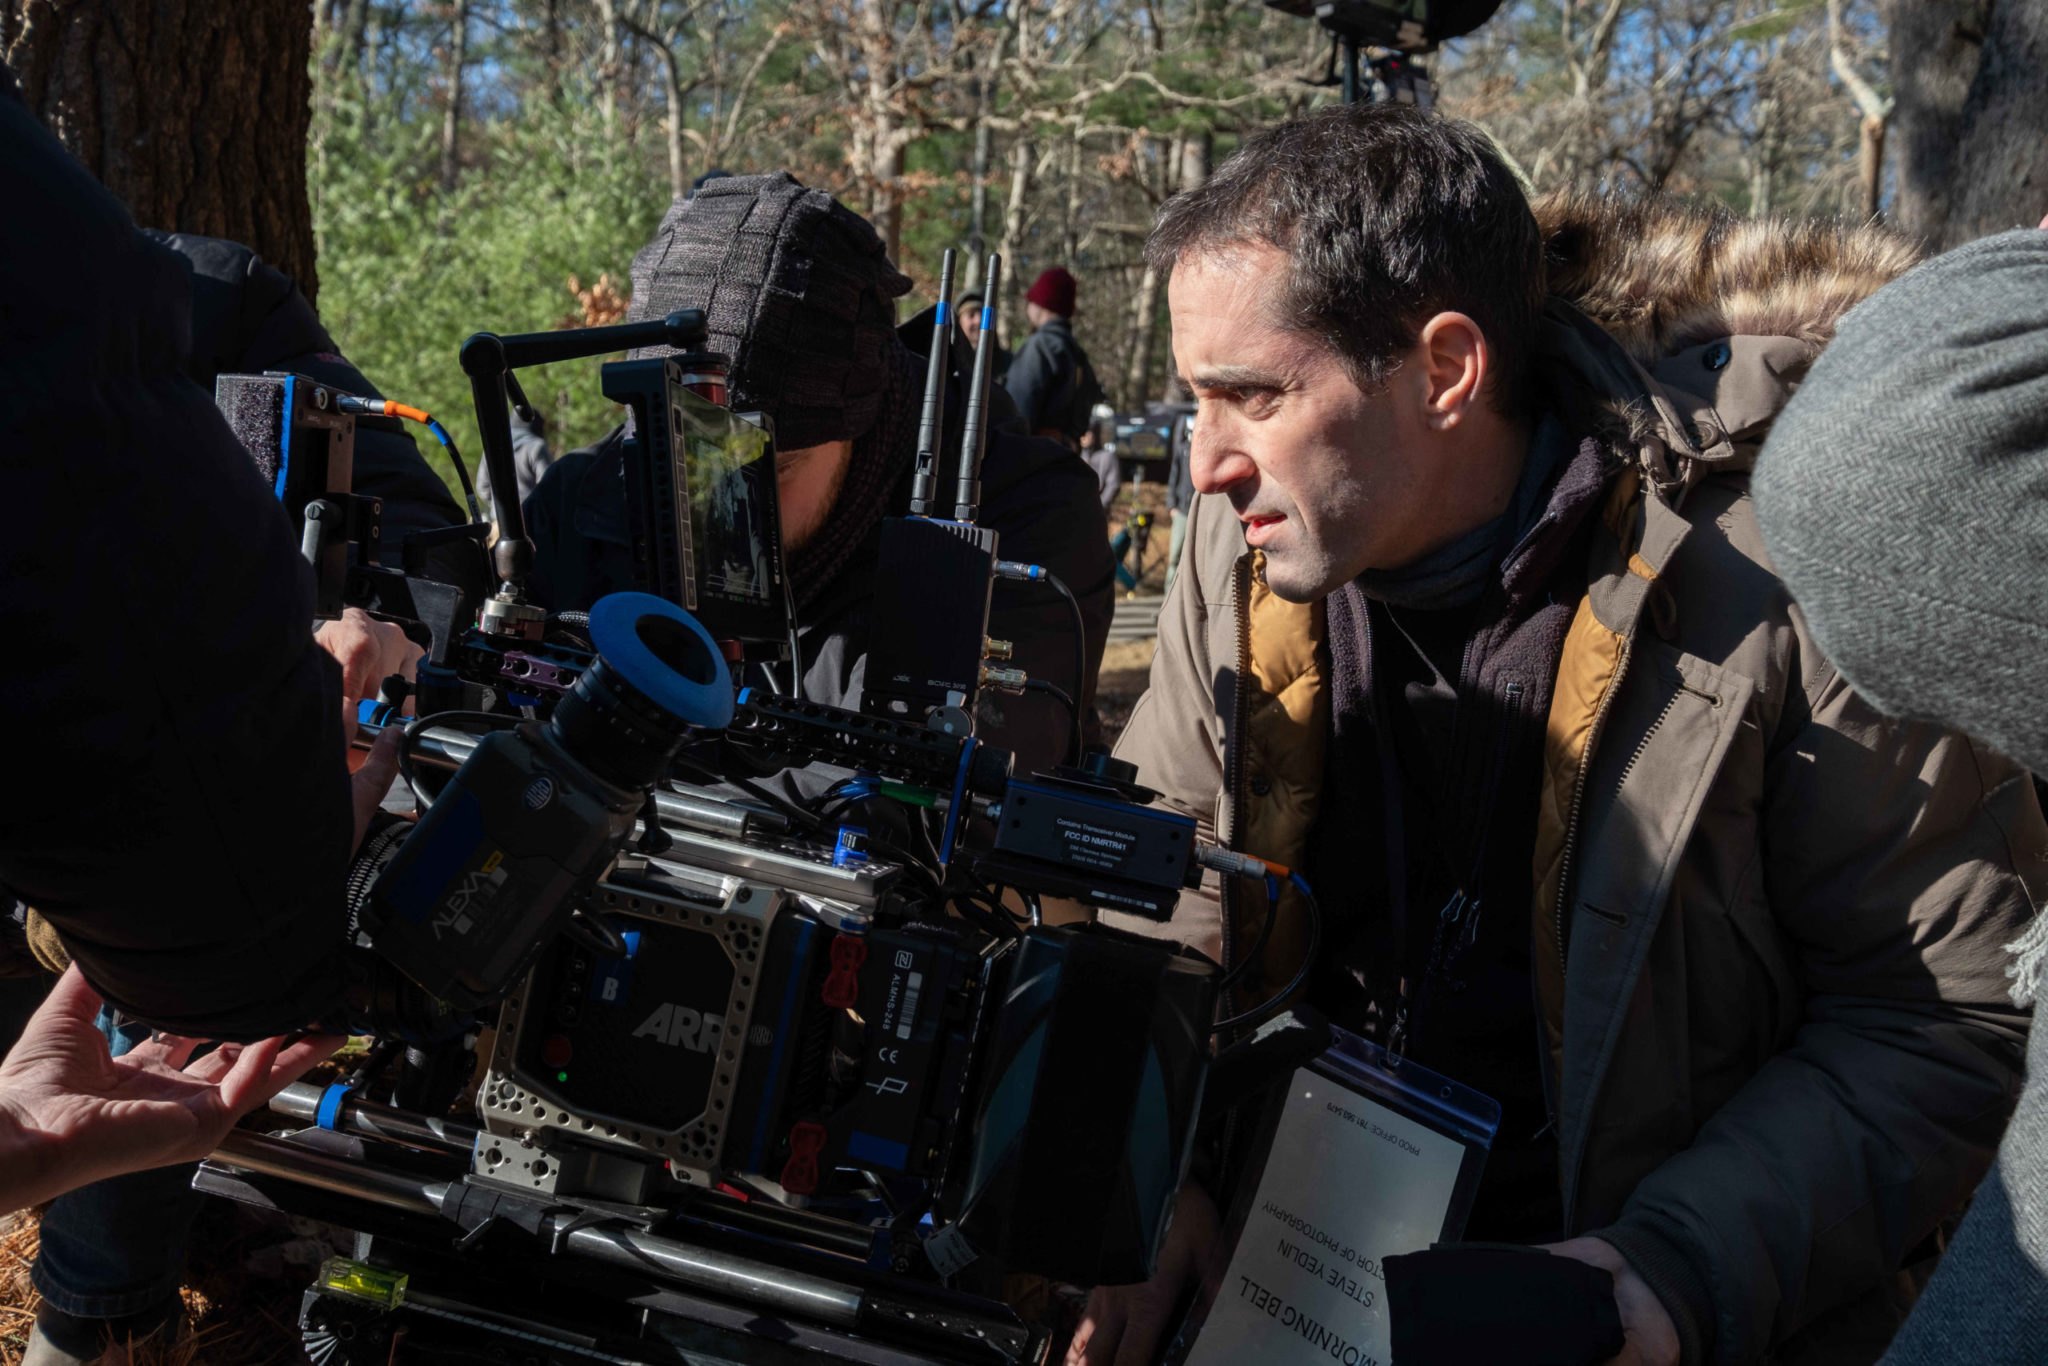 Cinematographer Steve Yedlin, ASC, shooting <i>Knives Out</i> on location.